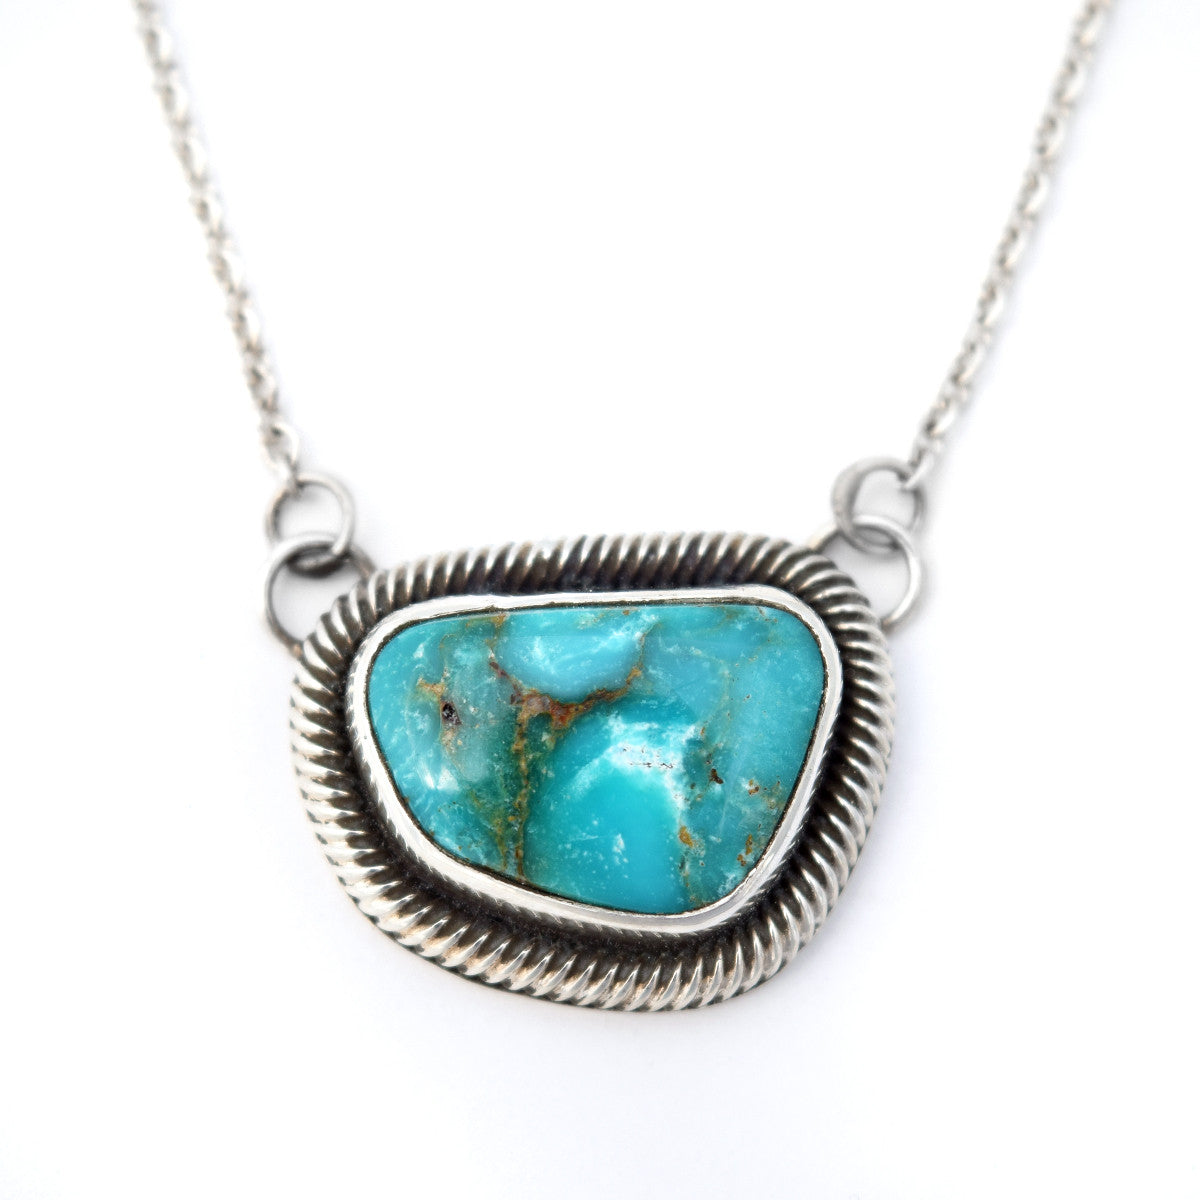 'Artie' Kingman Turquoise Necklace